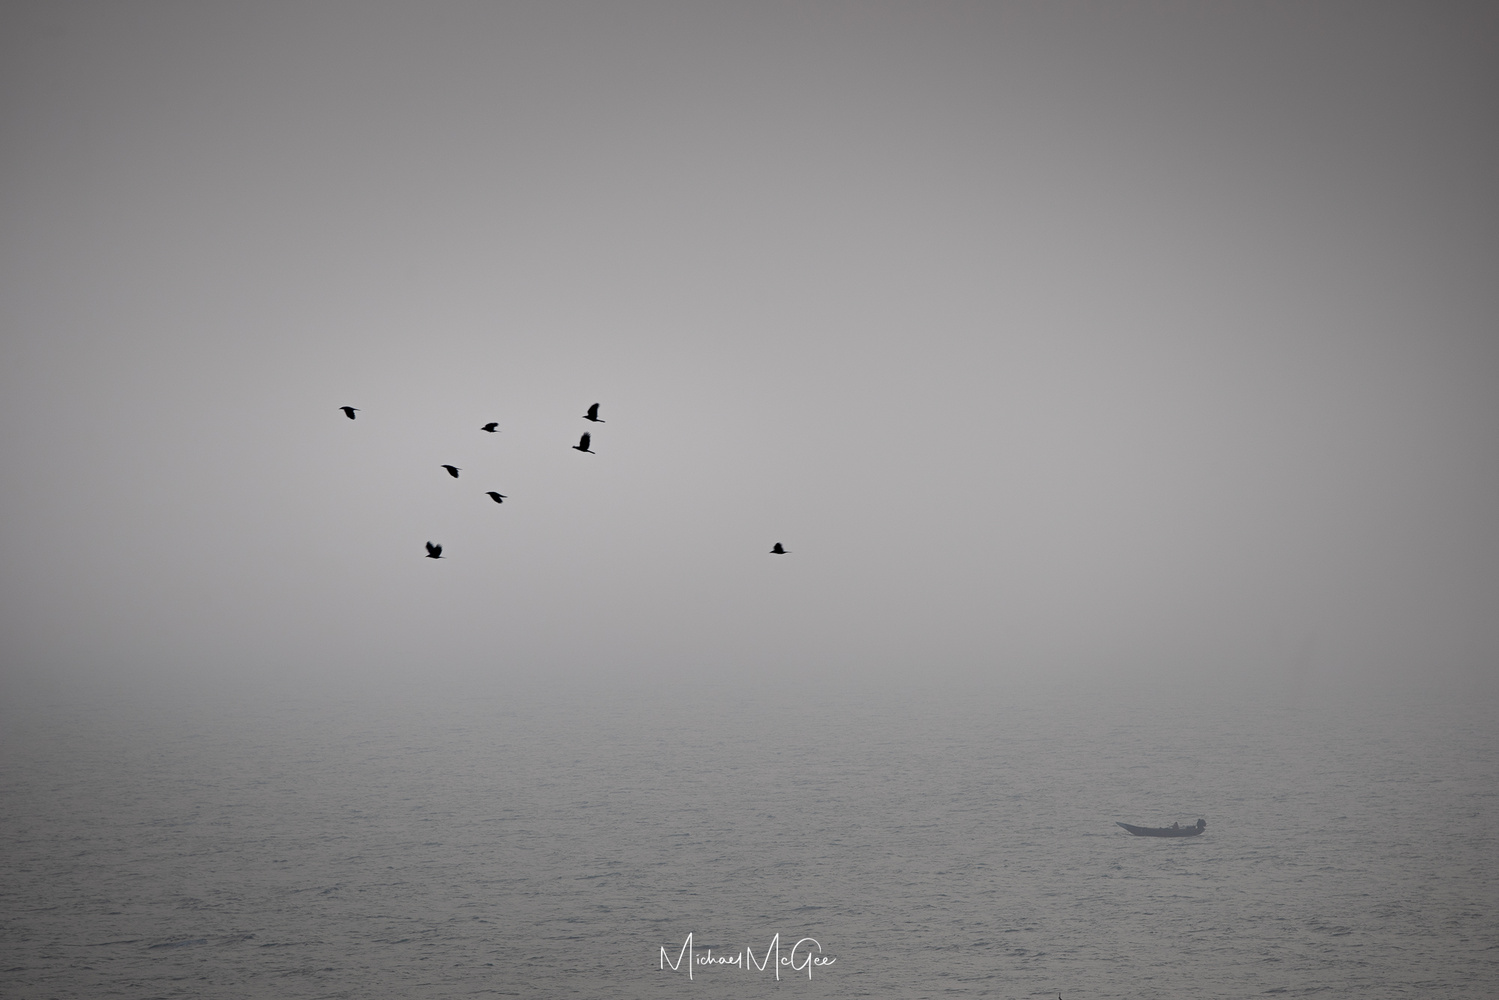 Birds and a boat by Michael McGee